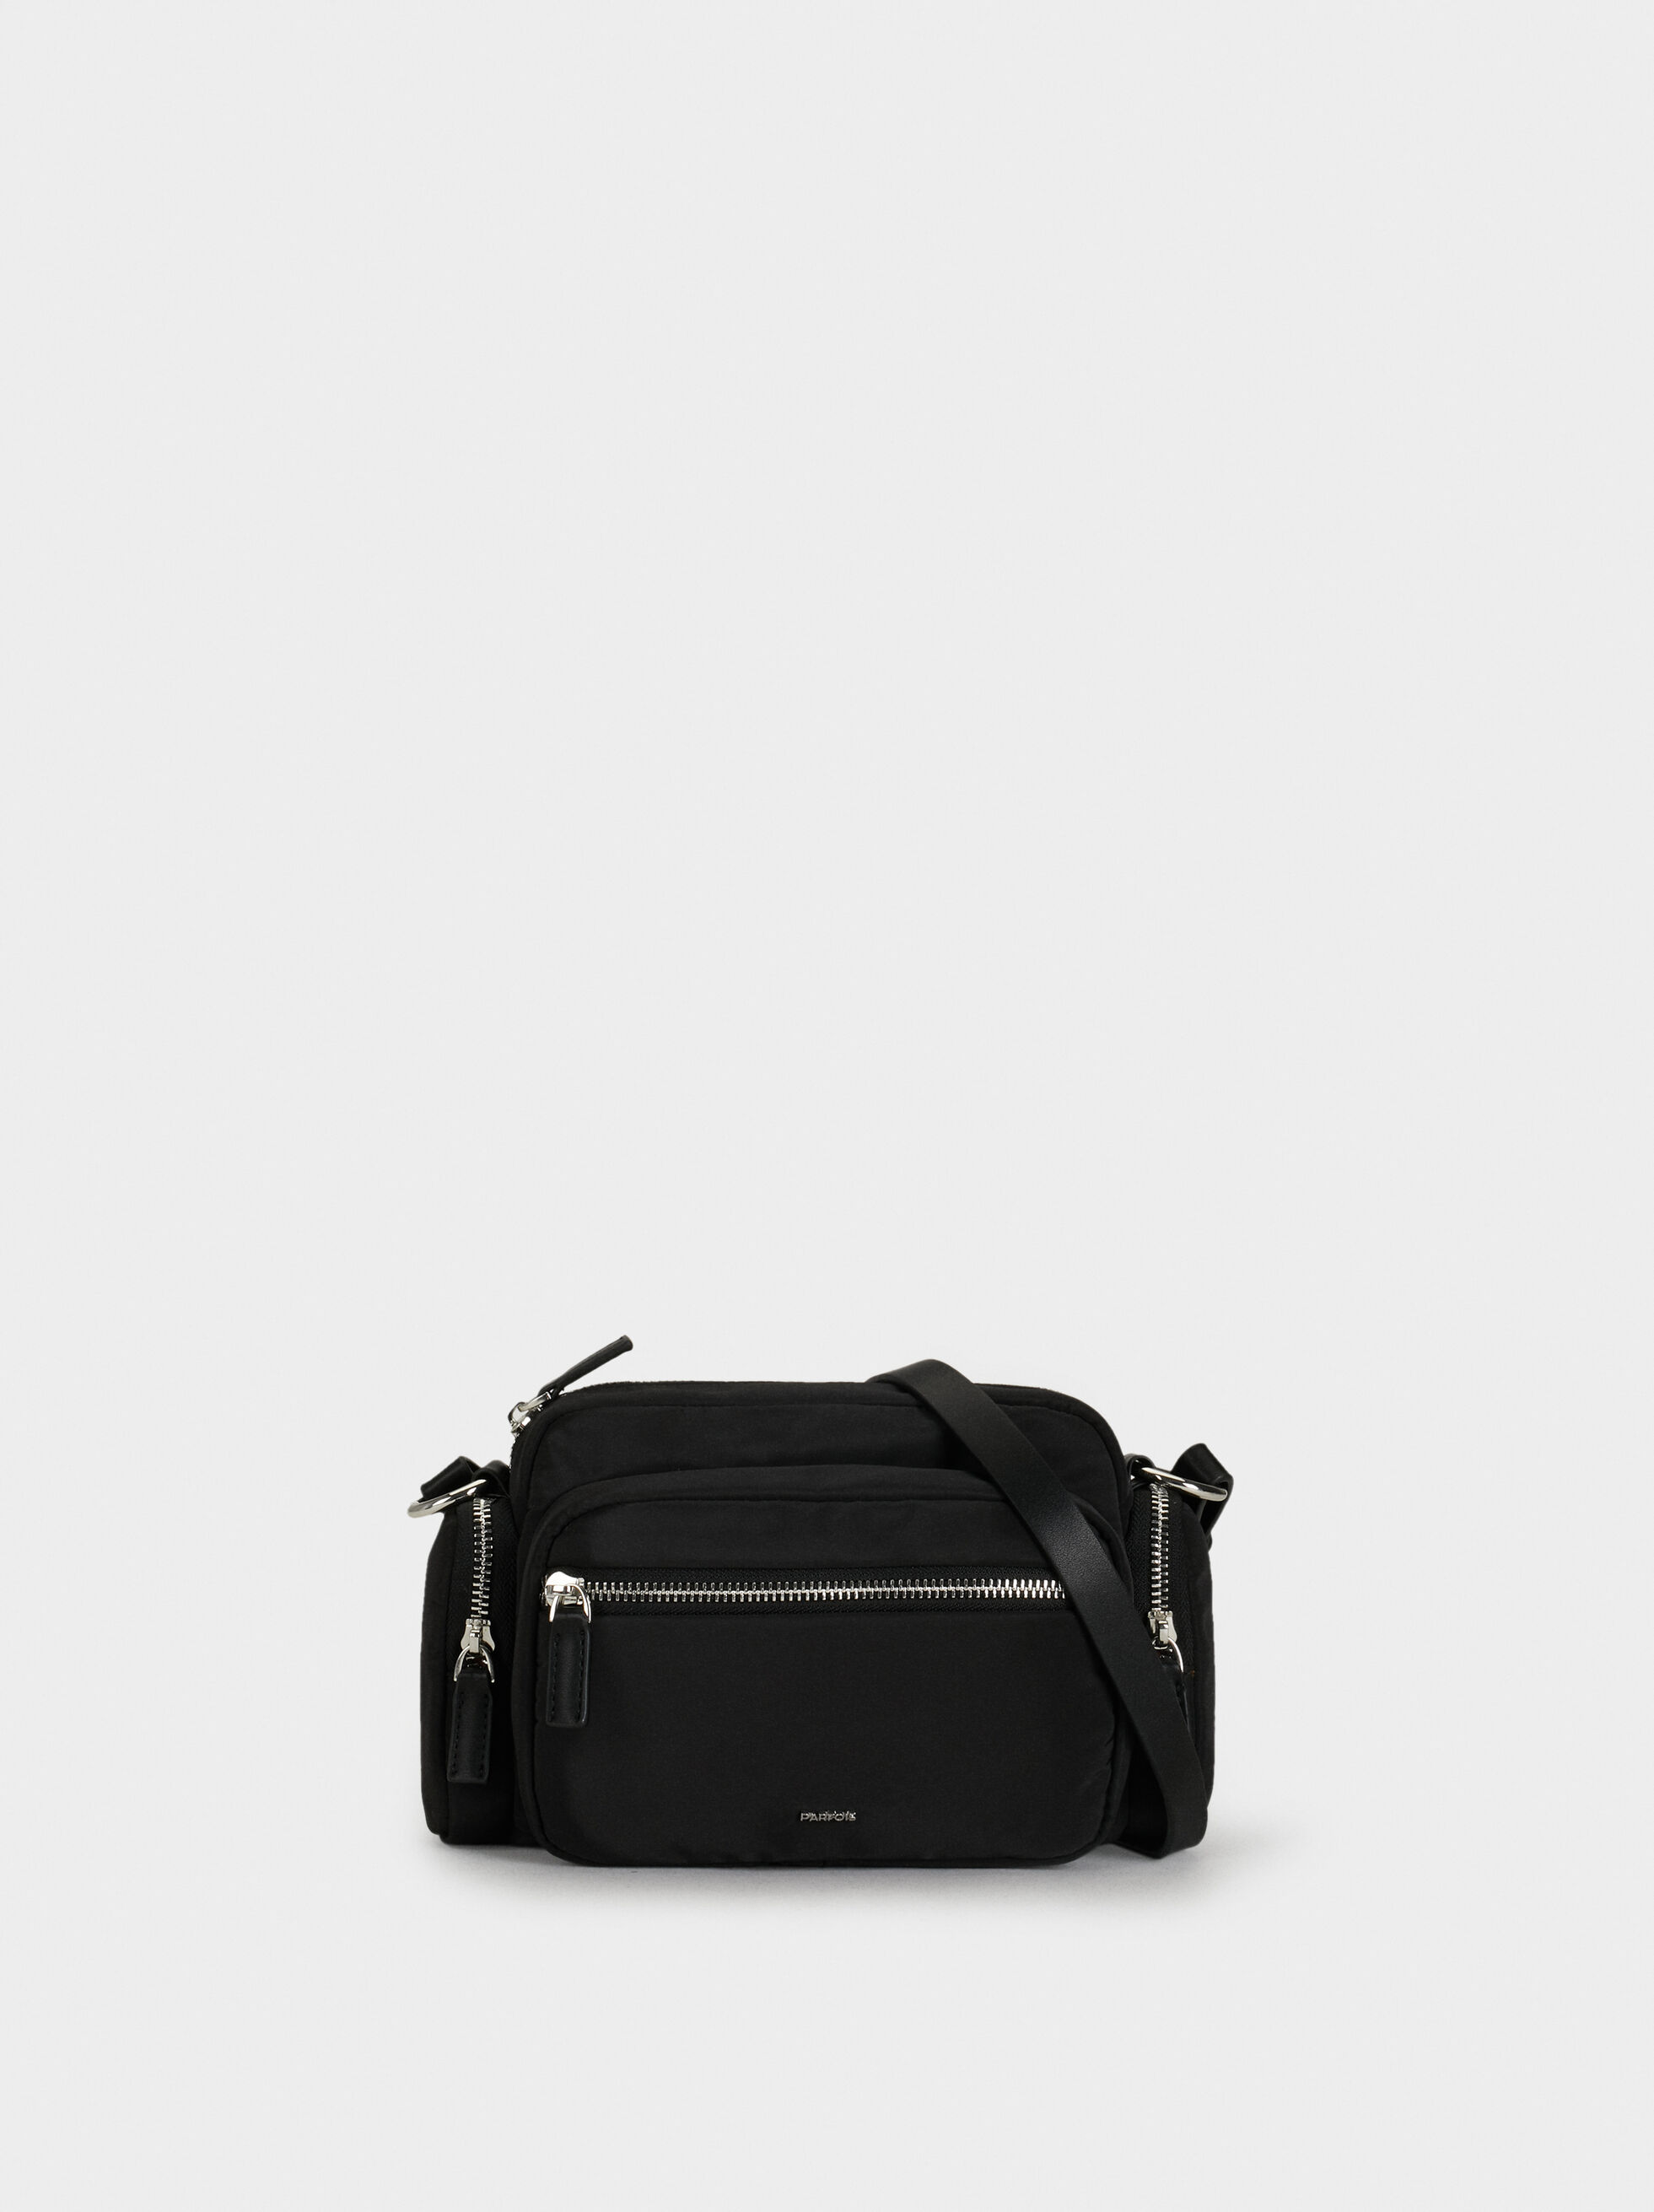 Crossbody Bag With Pockets And Zip, , hi-res